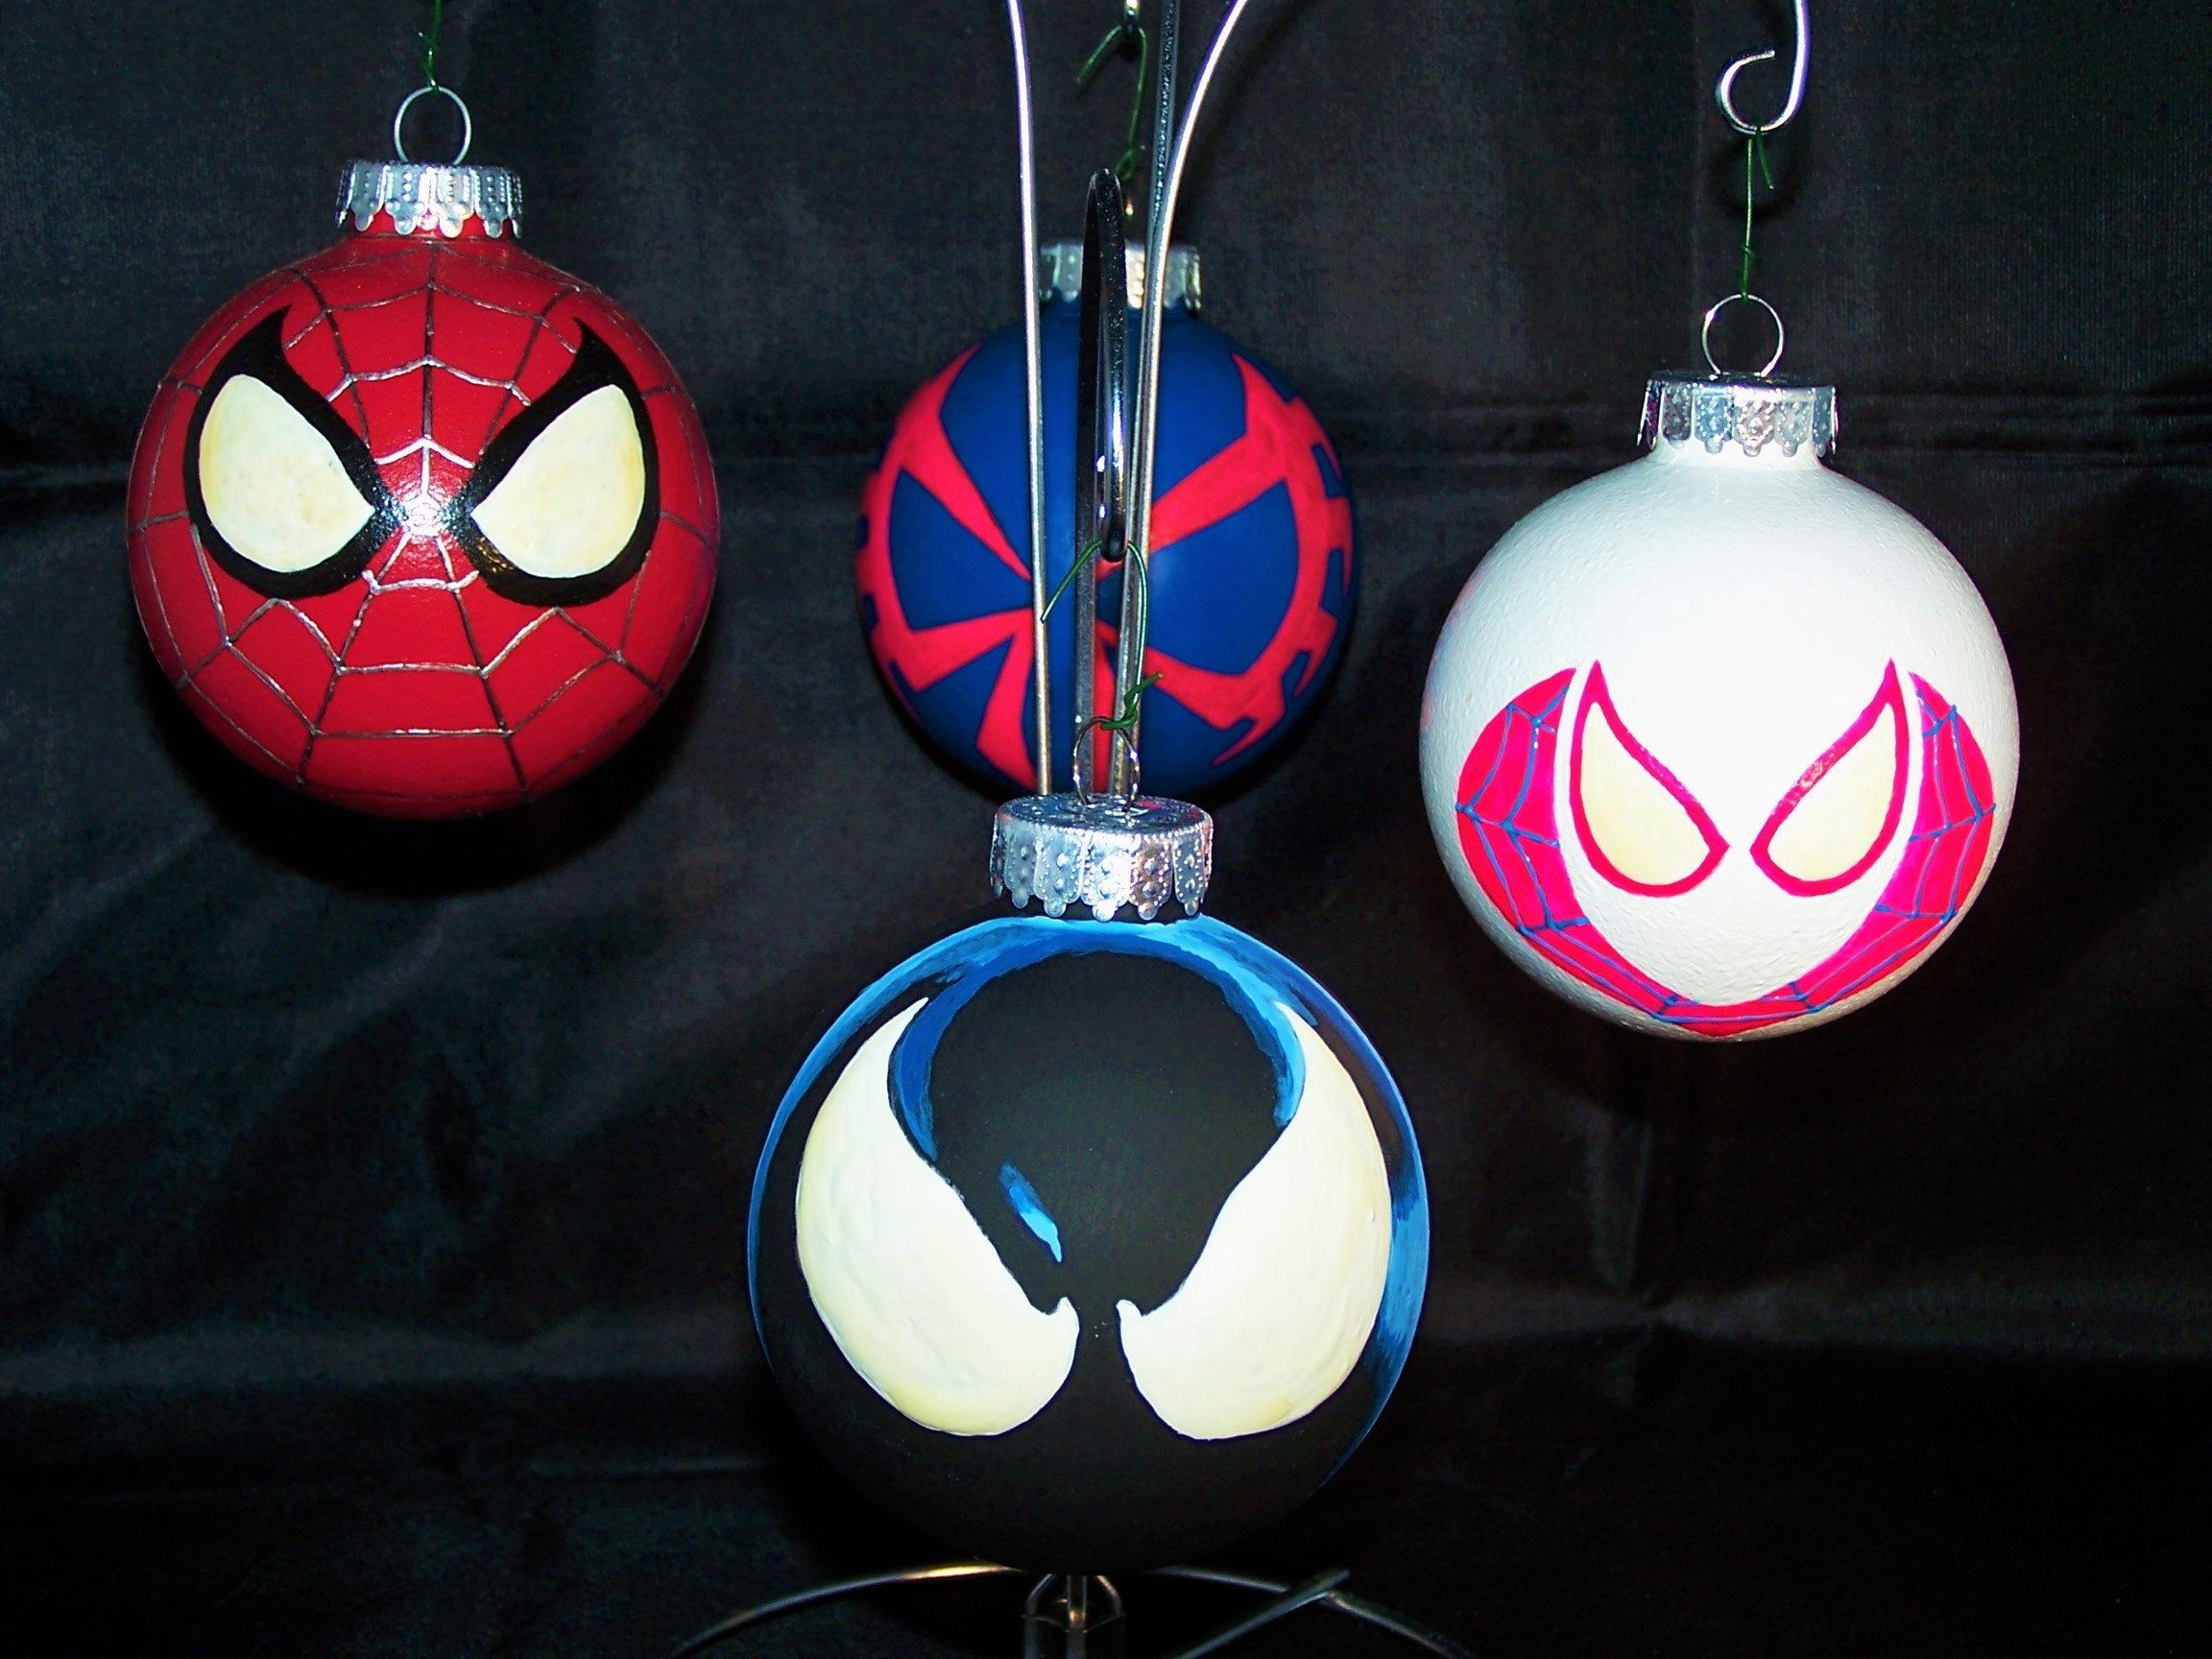 Spider Man Ornament W Glow In The Dark Eyes Etsy Custom Christmas Ornaments Christmas Decorations Apartment Marvel Ornaments